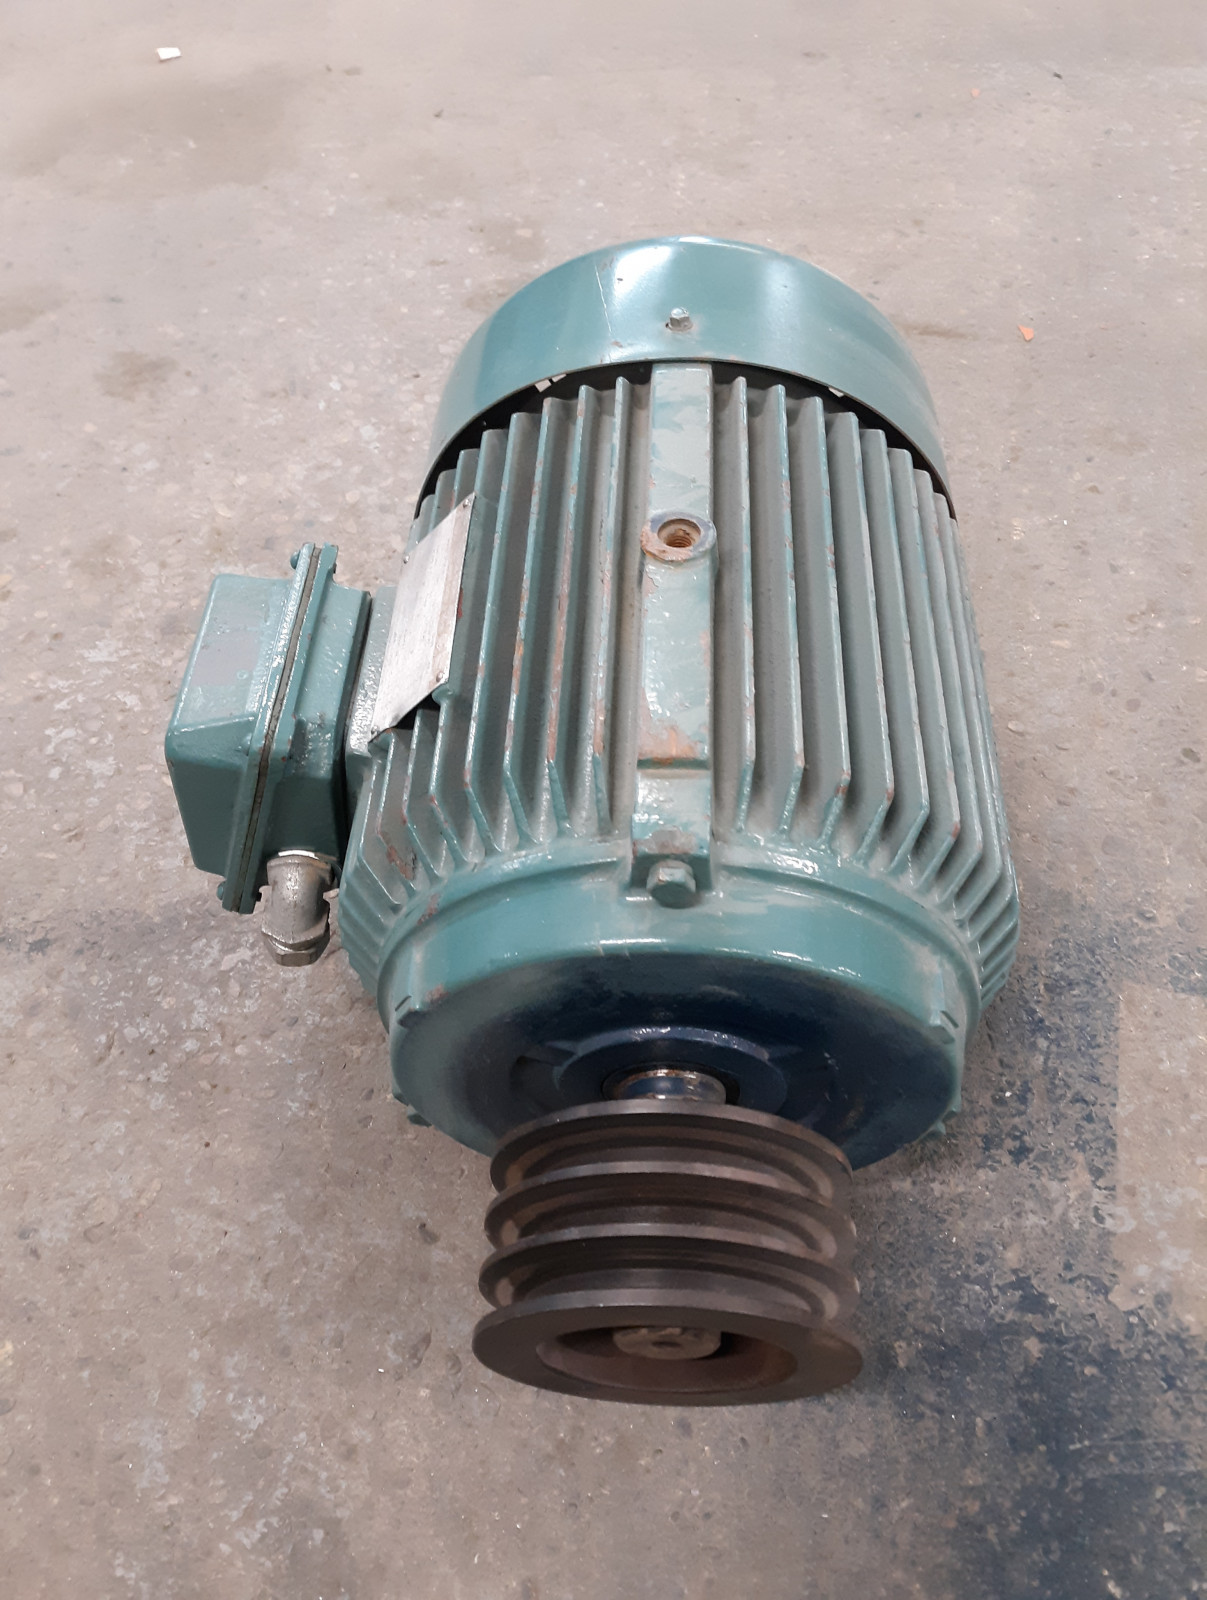 Worldwide Electric WWE7.5-18-213T Motor HP7.5 FR213T RPM1760 VOLT230/460 3PHASE